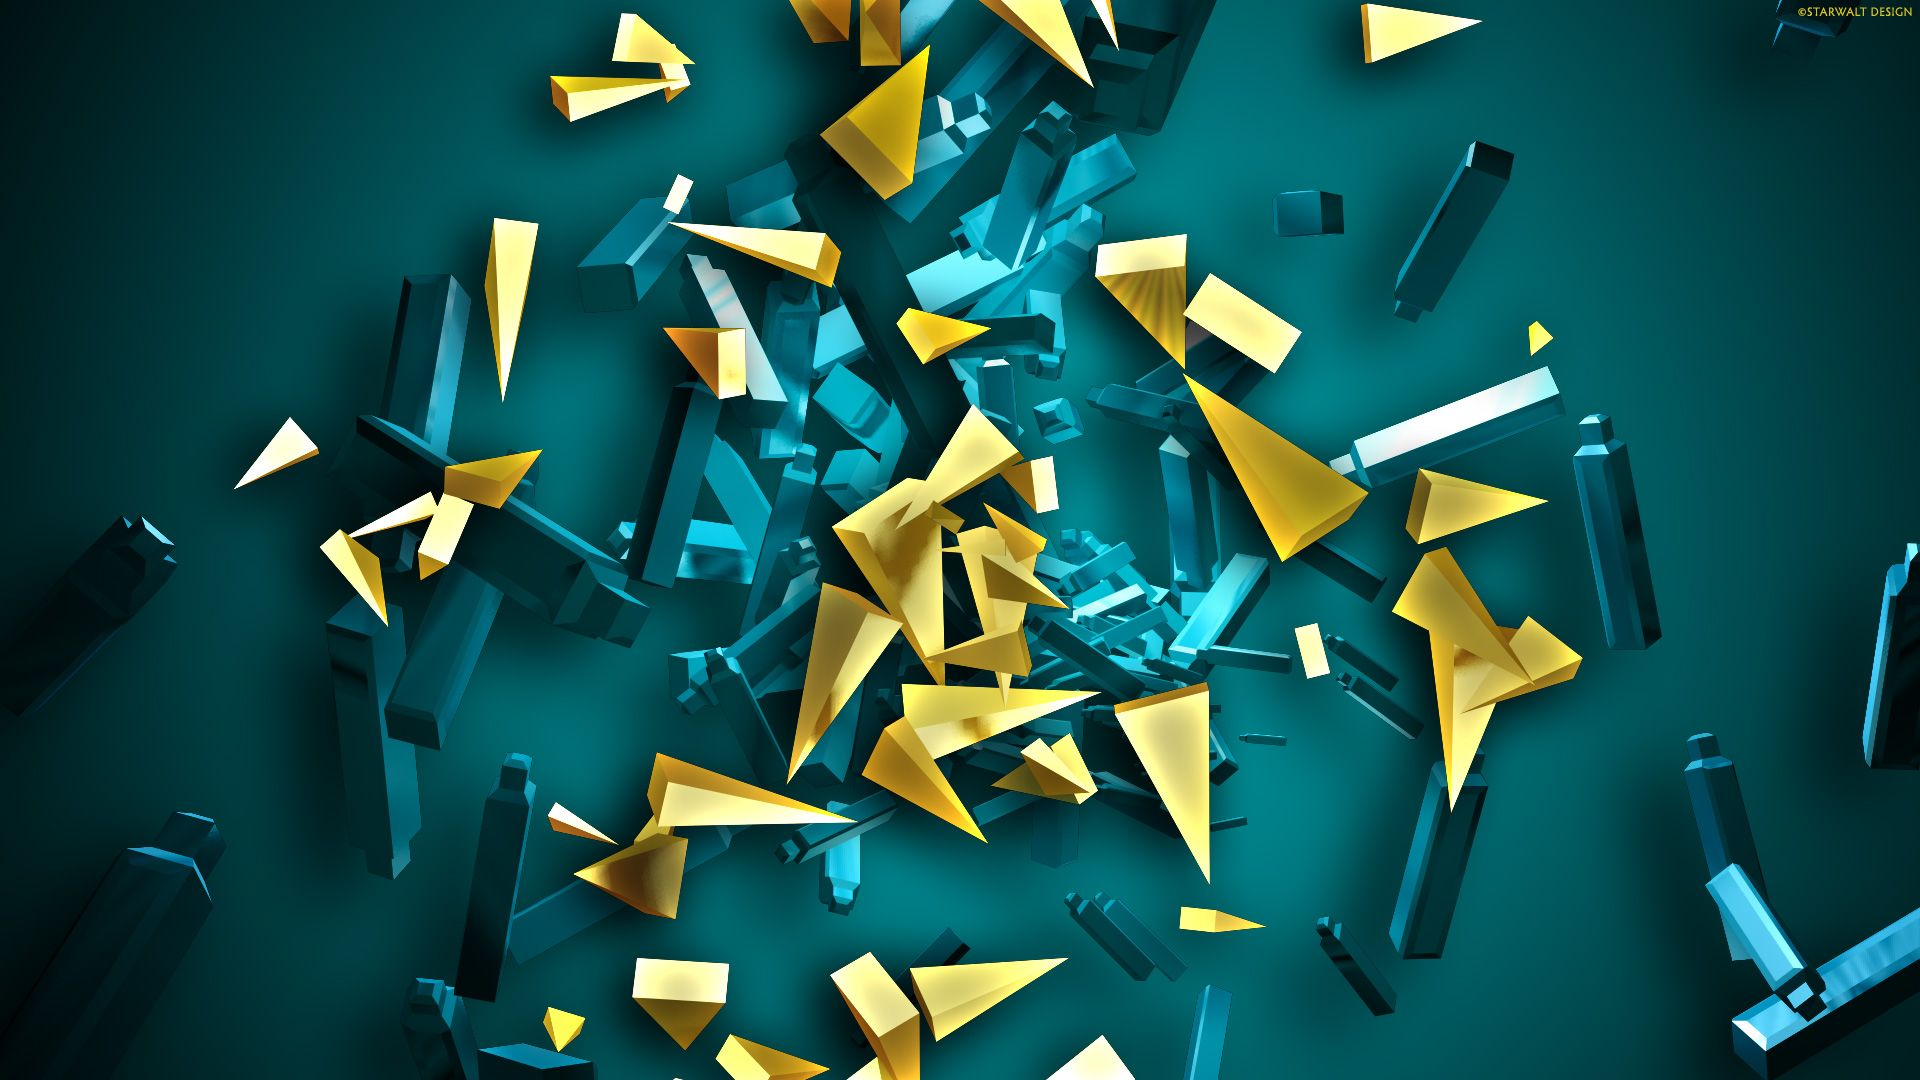 3D Abstract Desktop Wallpapers - Top Free 3D Abstract